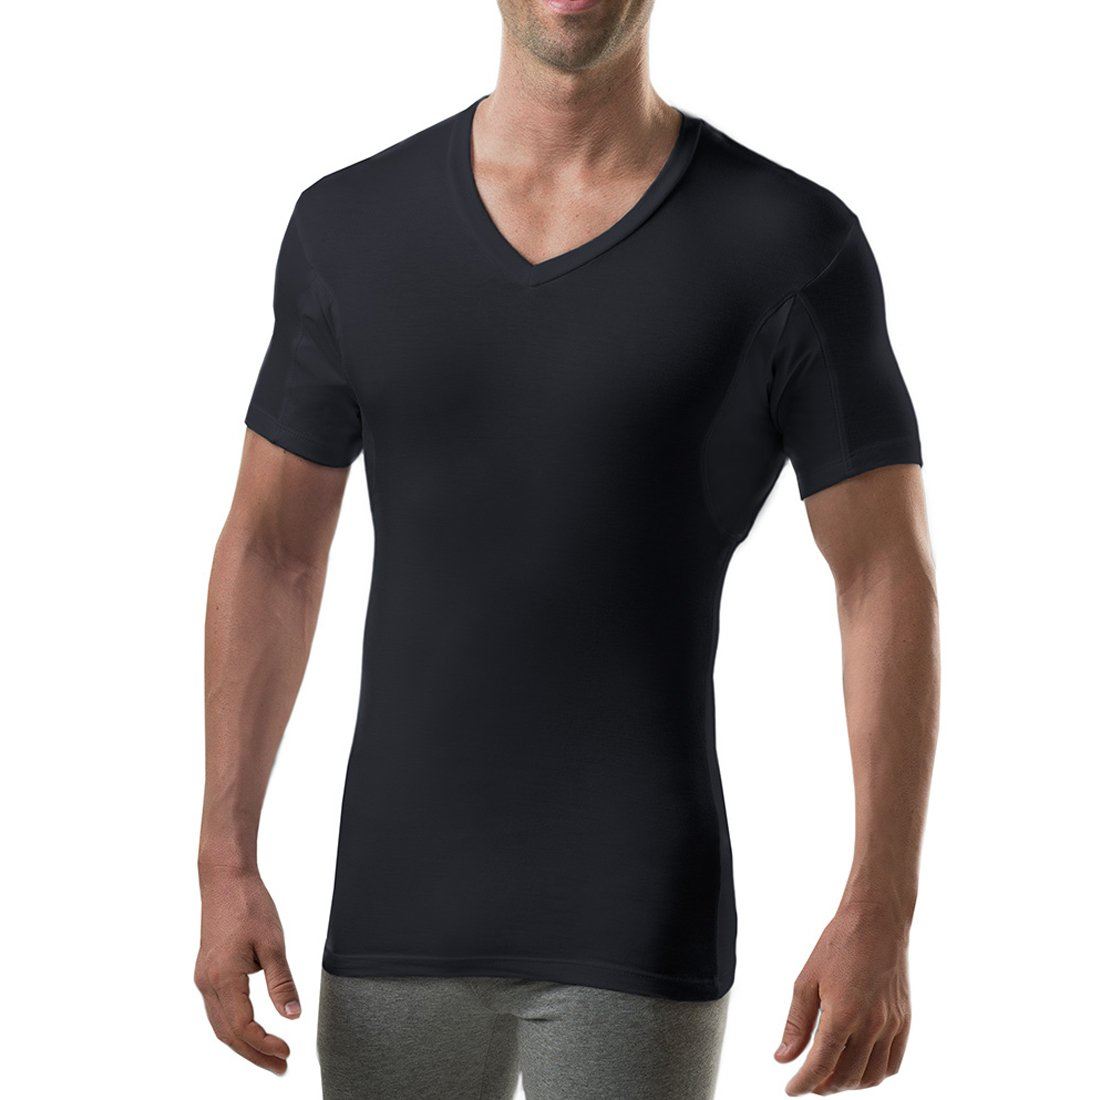 Sweatproof Undershirt for Men with Underarm Sweat Pads (Slim Fit, V-Neck)